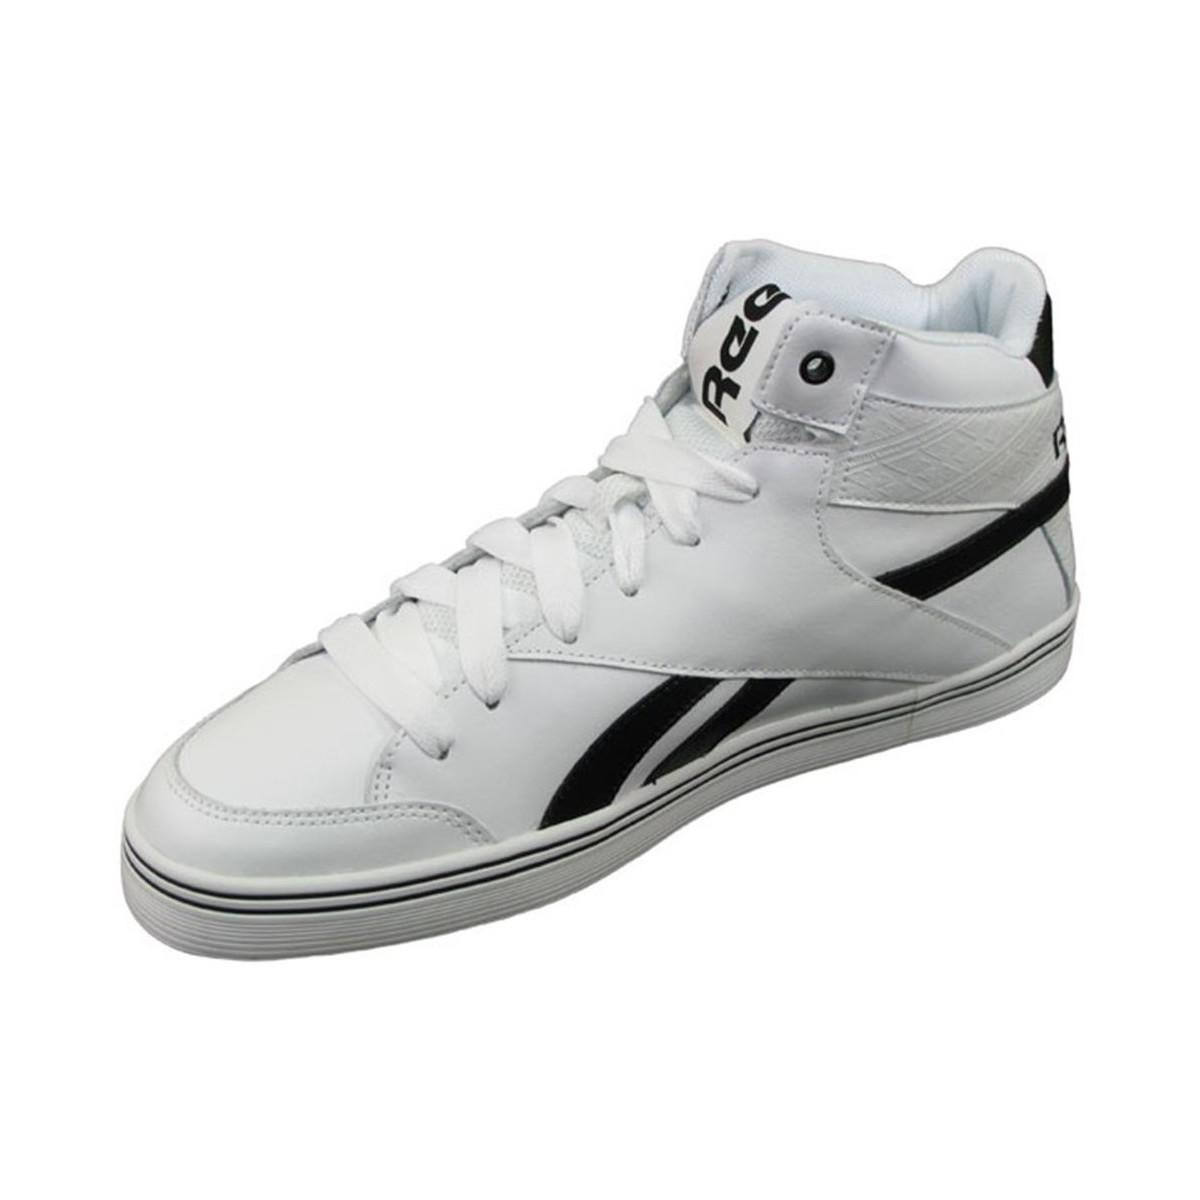 Reebok Streetsboro Mid Men's Shoes (high-top Trainers) In Black for Men